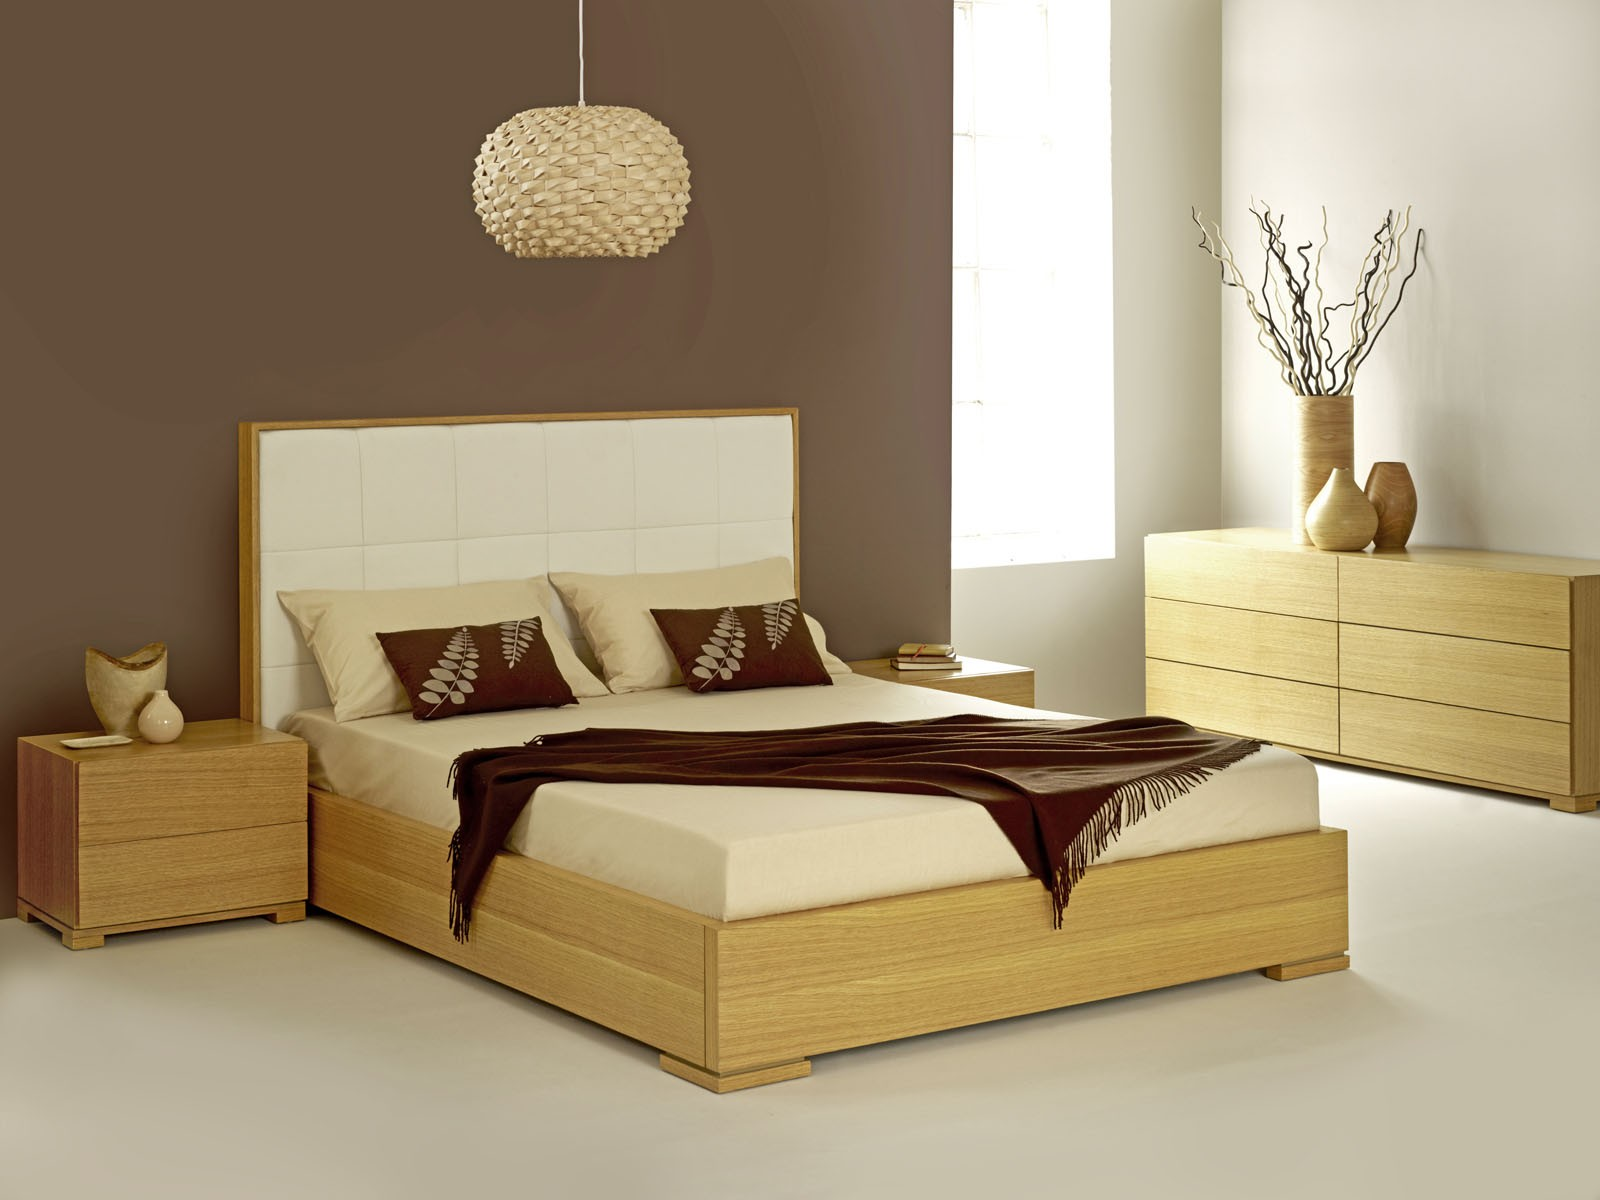 Remarkable Bedroom Color That Look Good with Wood 1600 x 1200 · 184 kB · jpeg